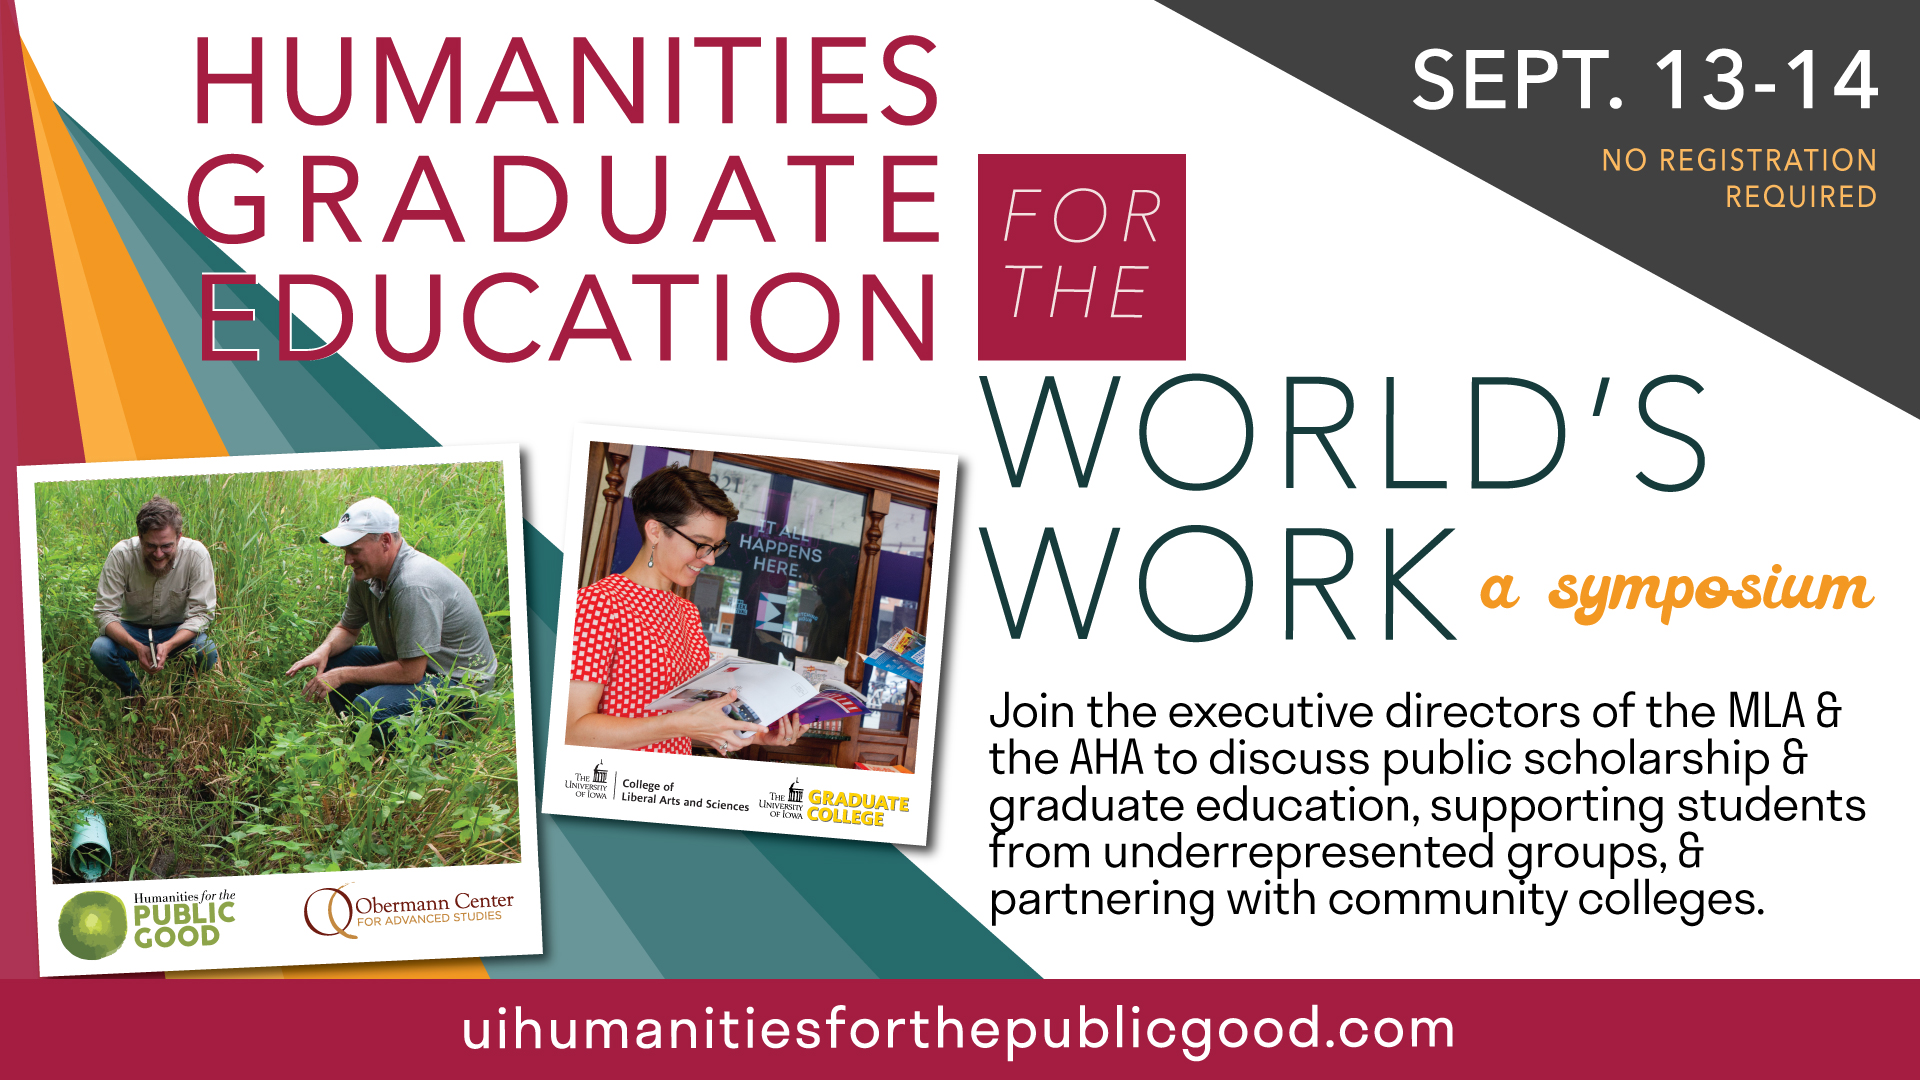 Humanities Graduate Education for the World's Work: A Symposium